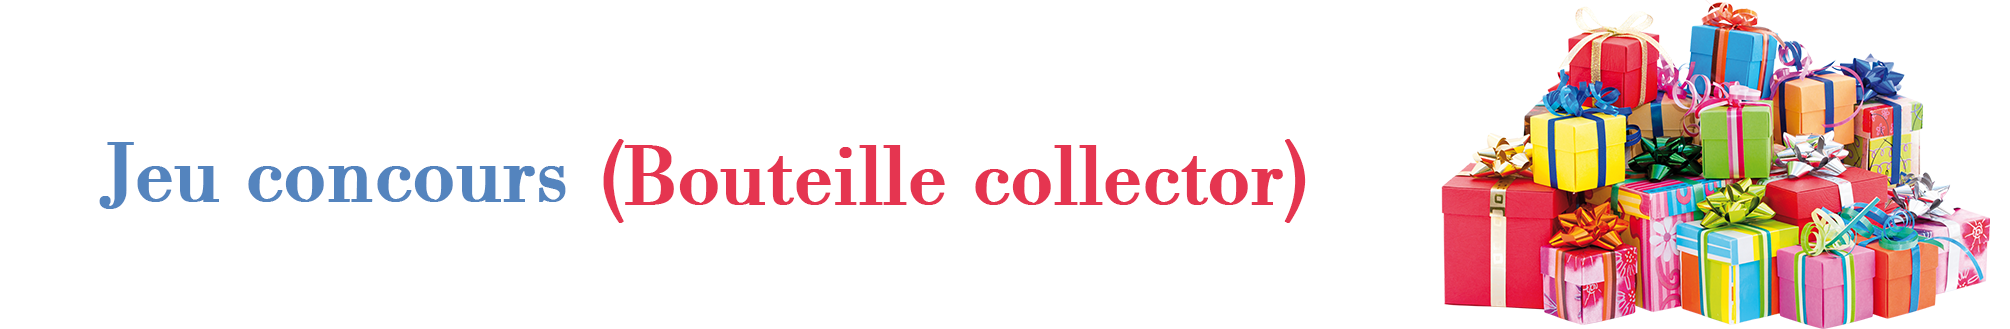 bouteille collector